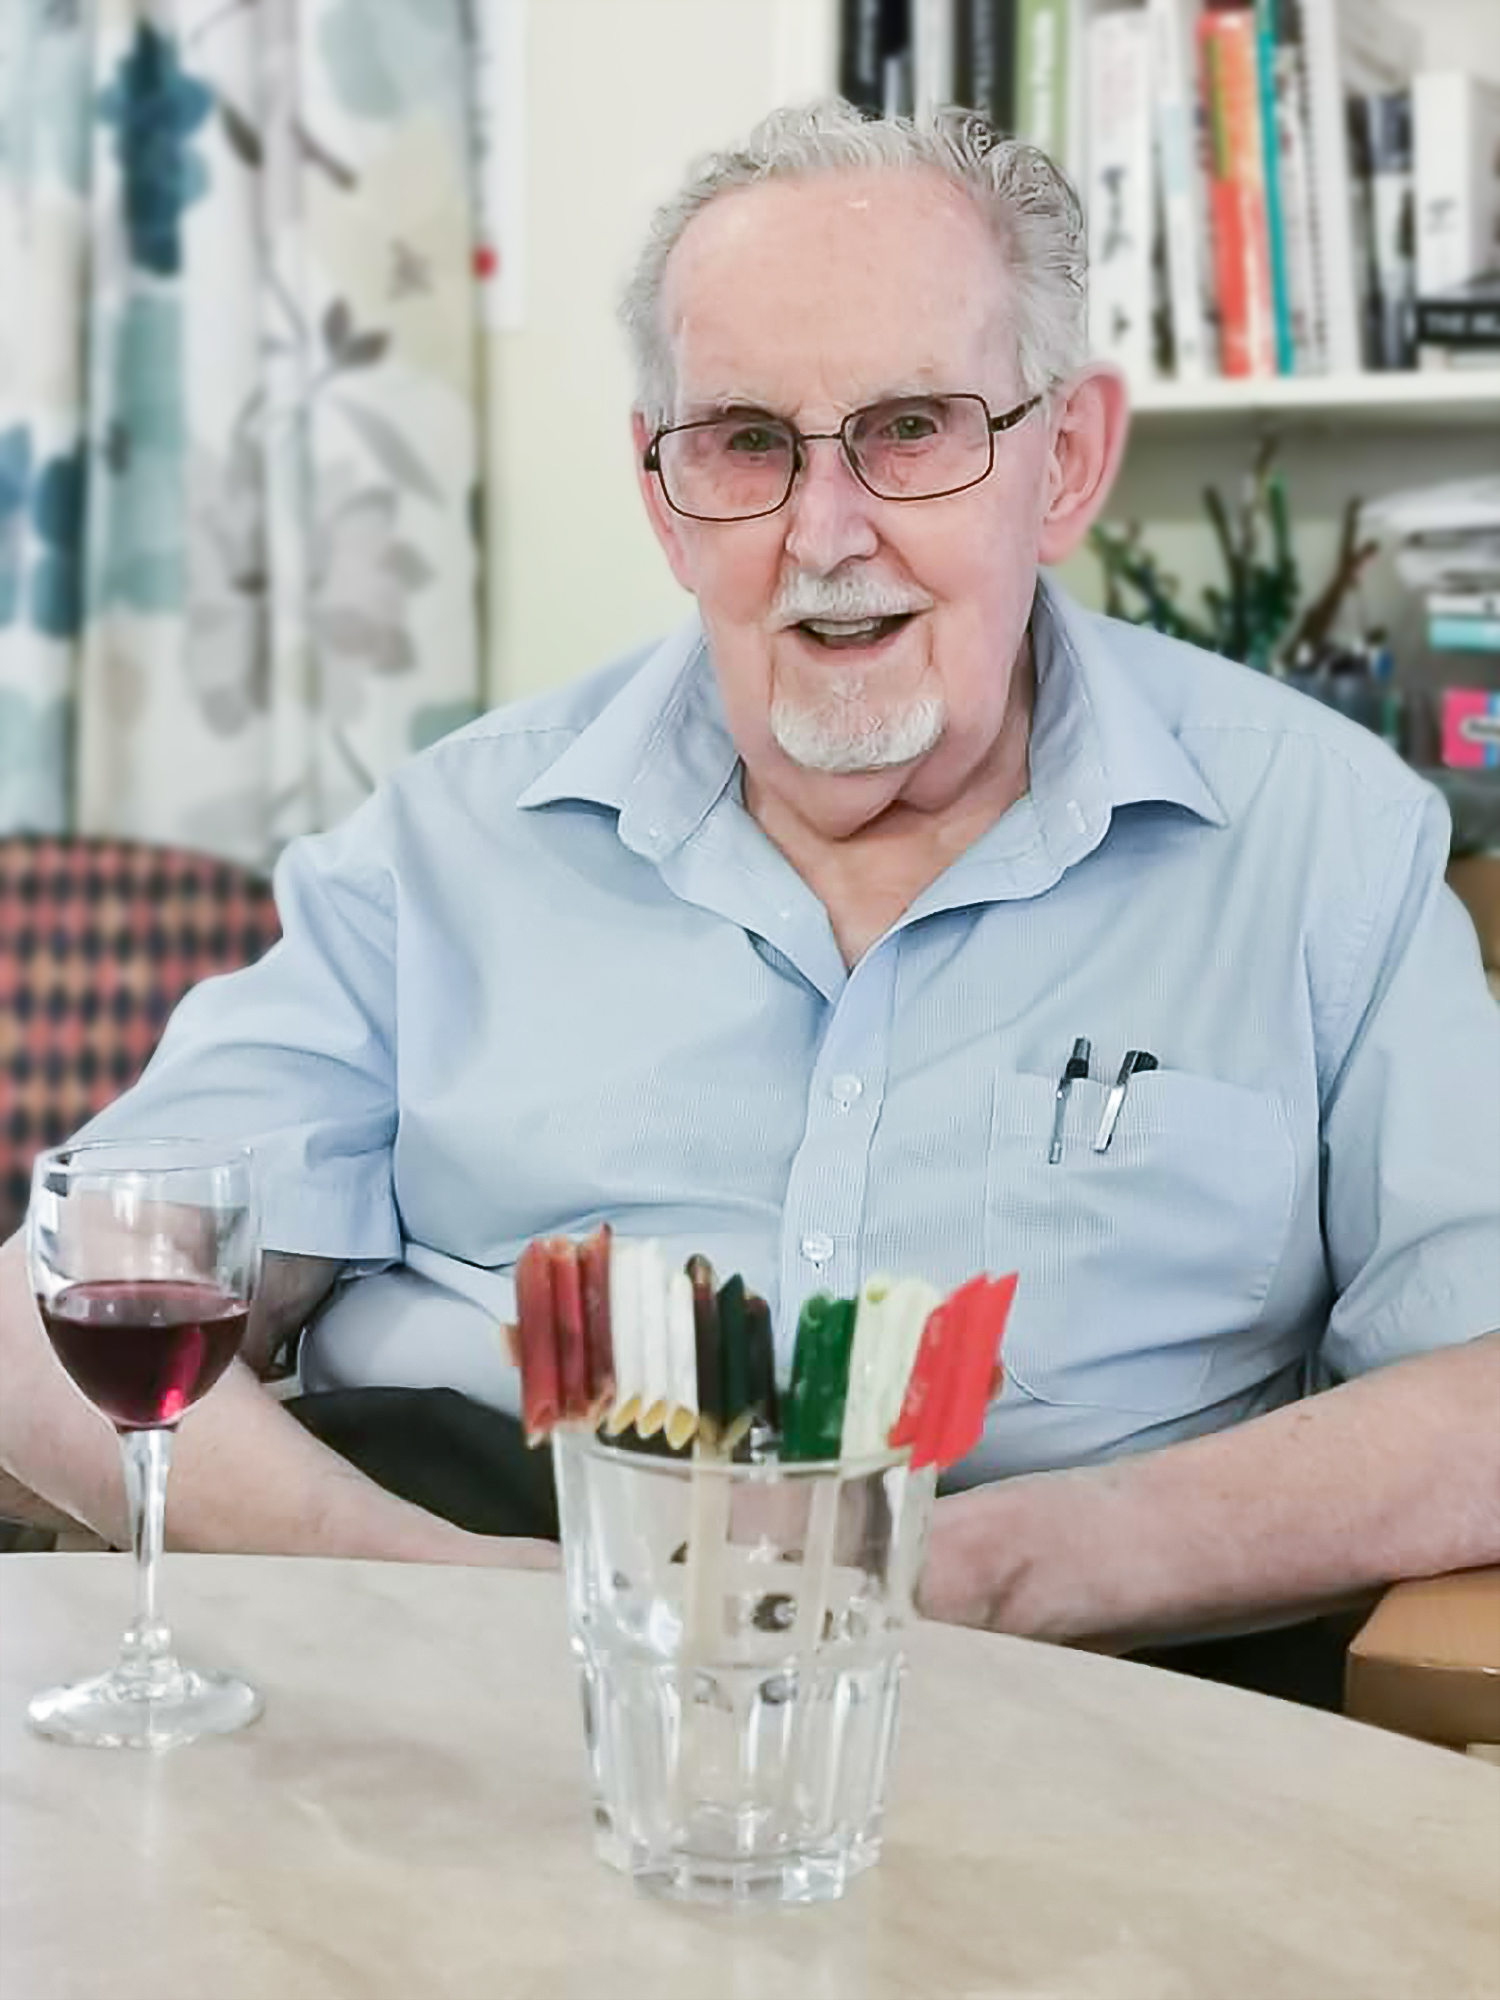 A resident enjoying wine with an Italian flag